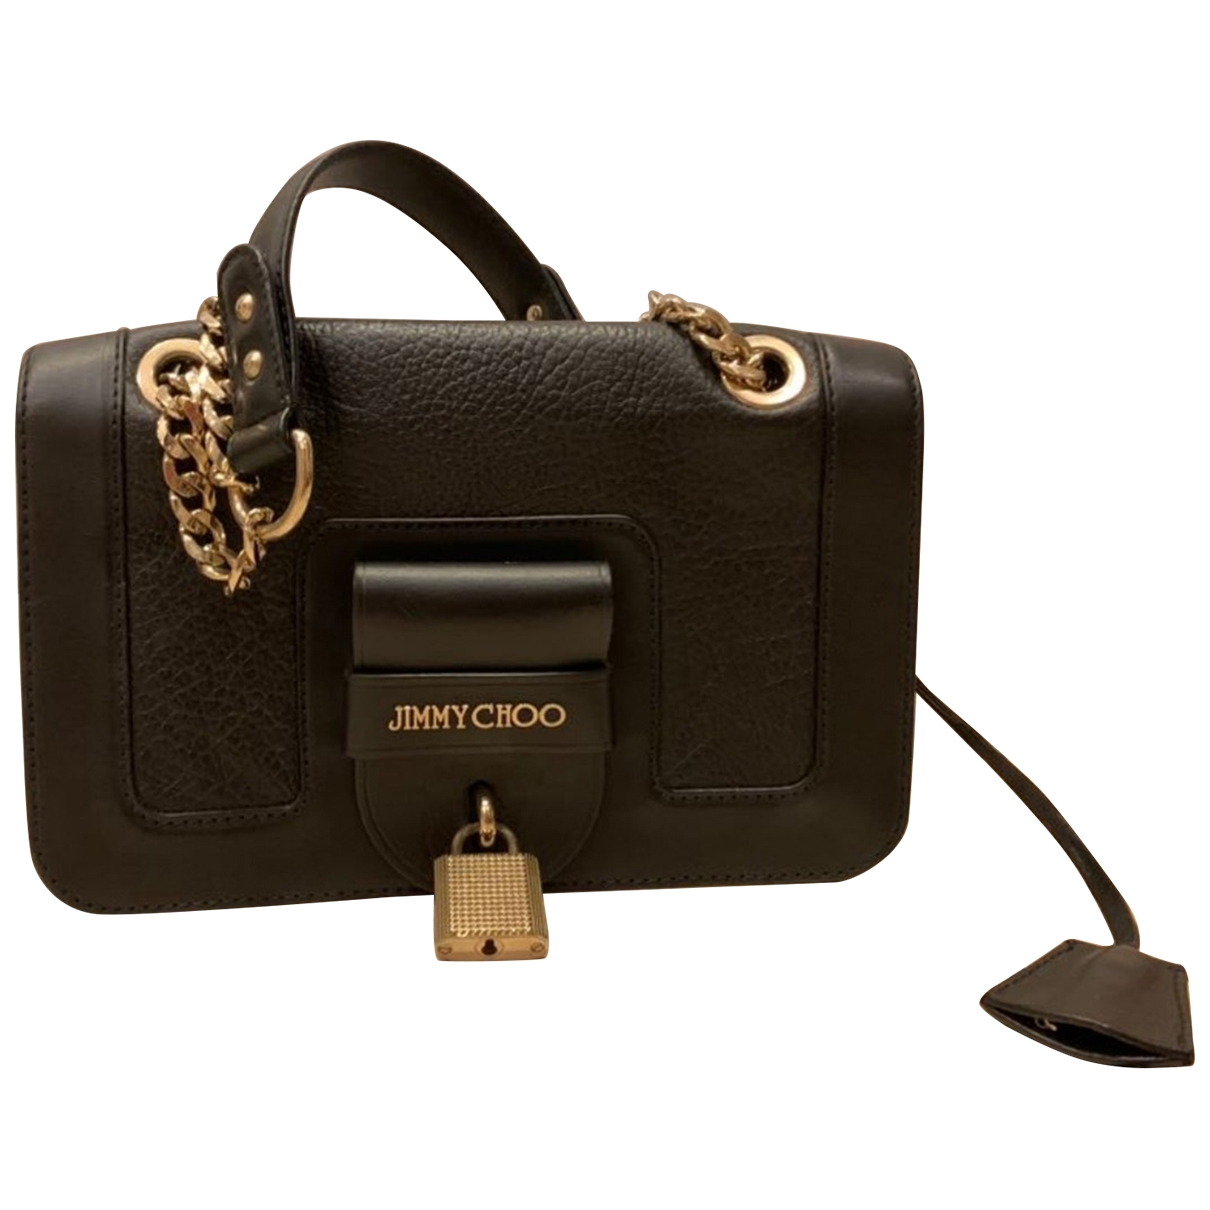 Jimmy Choo \N Black Leather handbag for Women \N